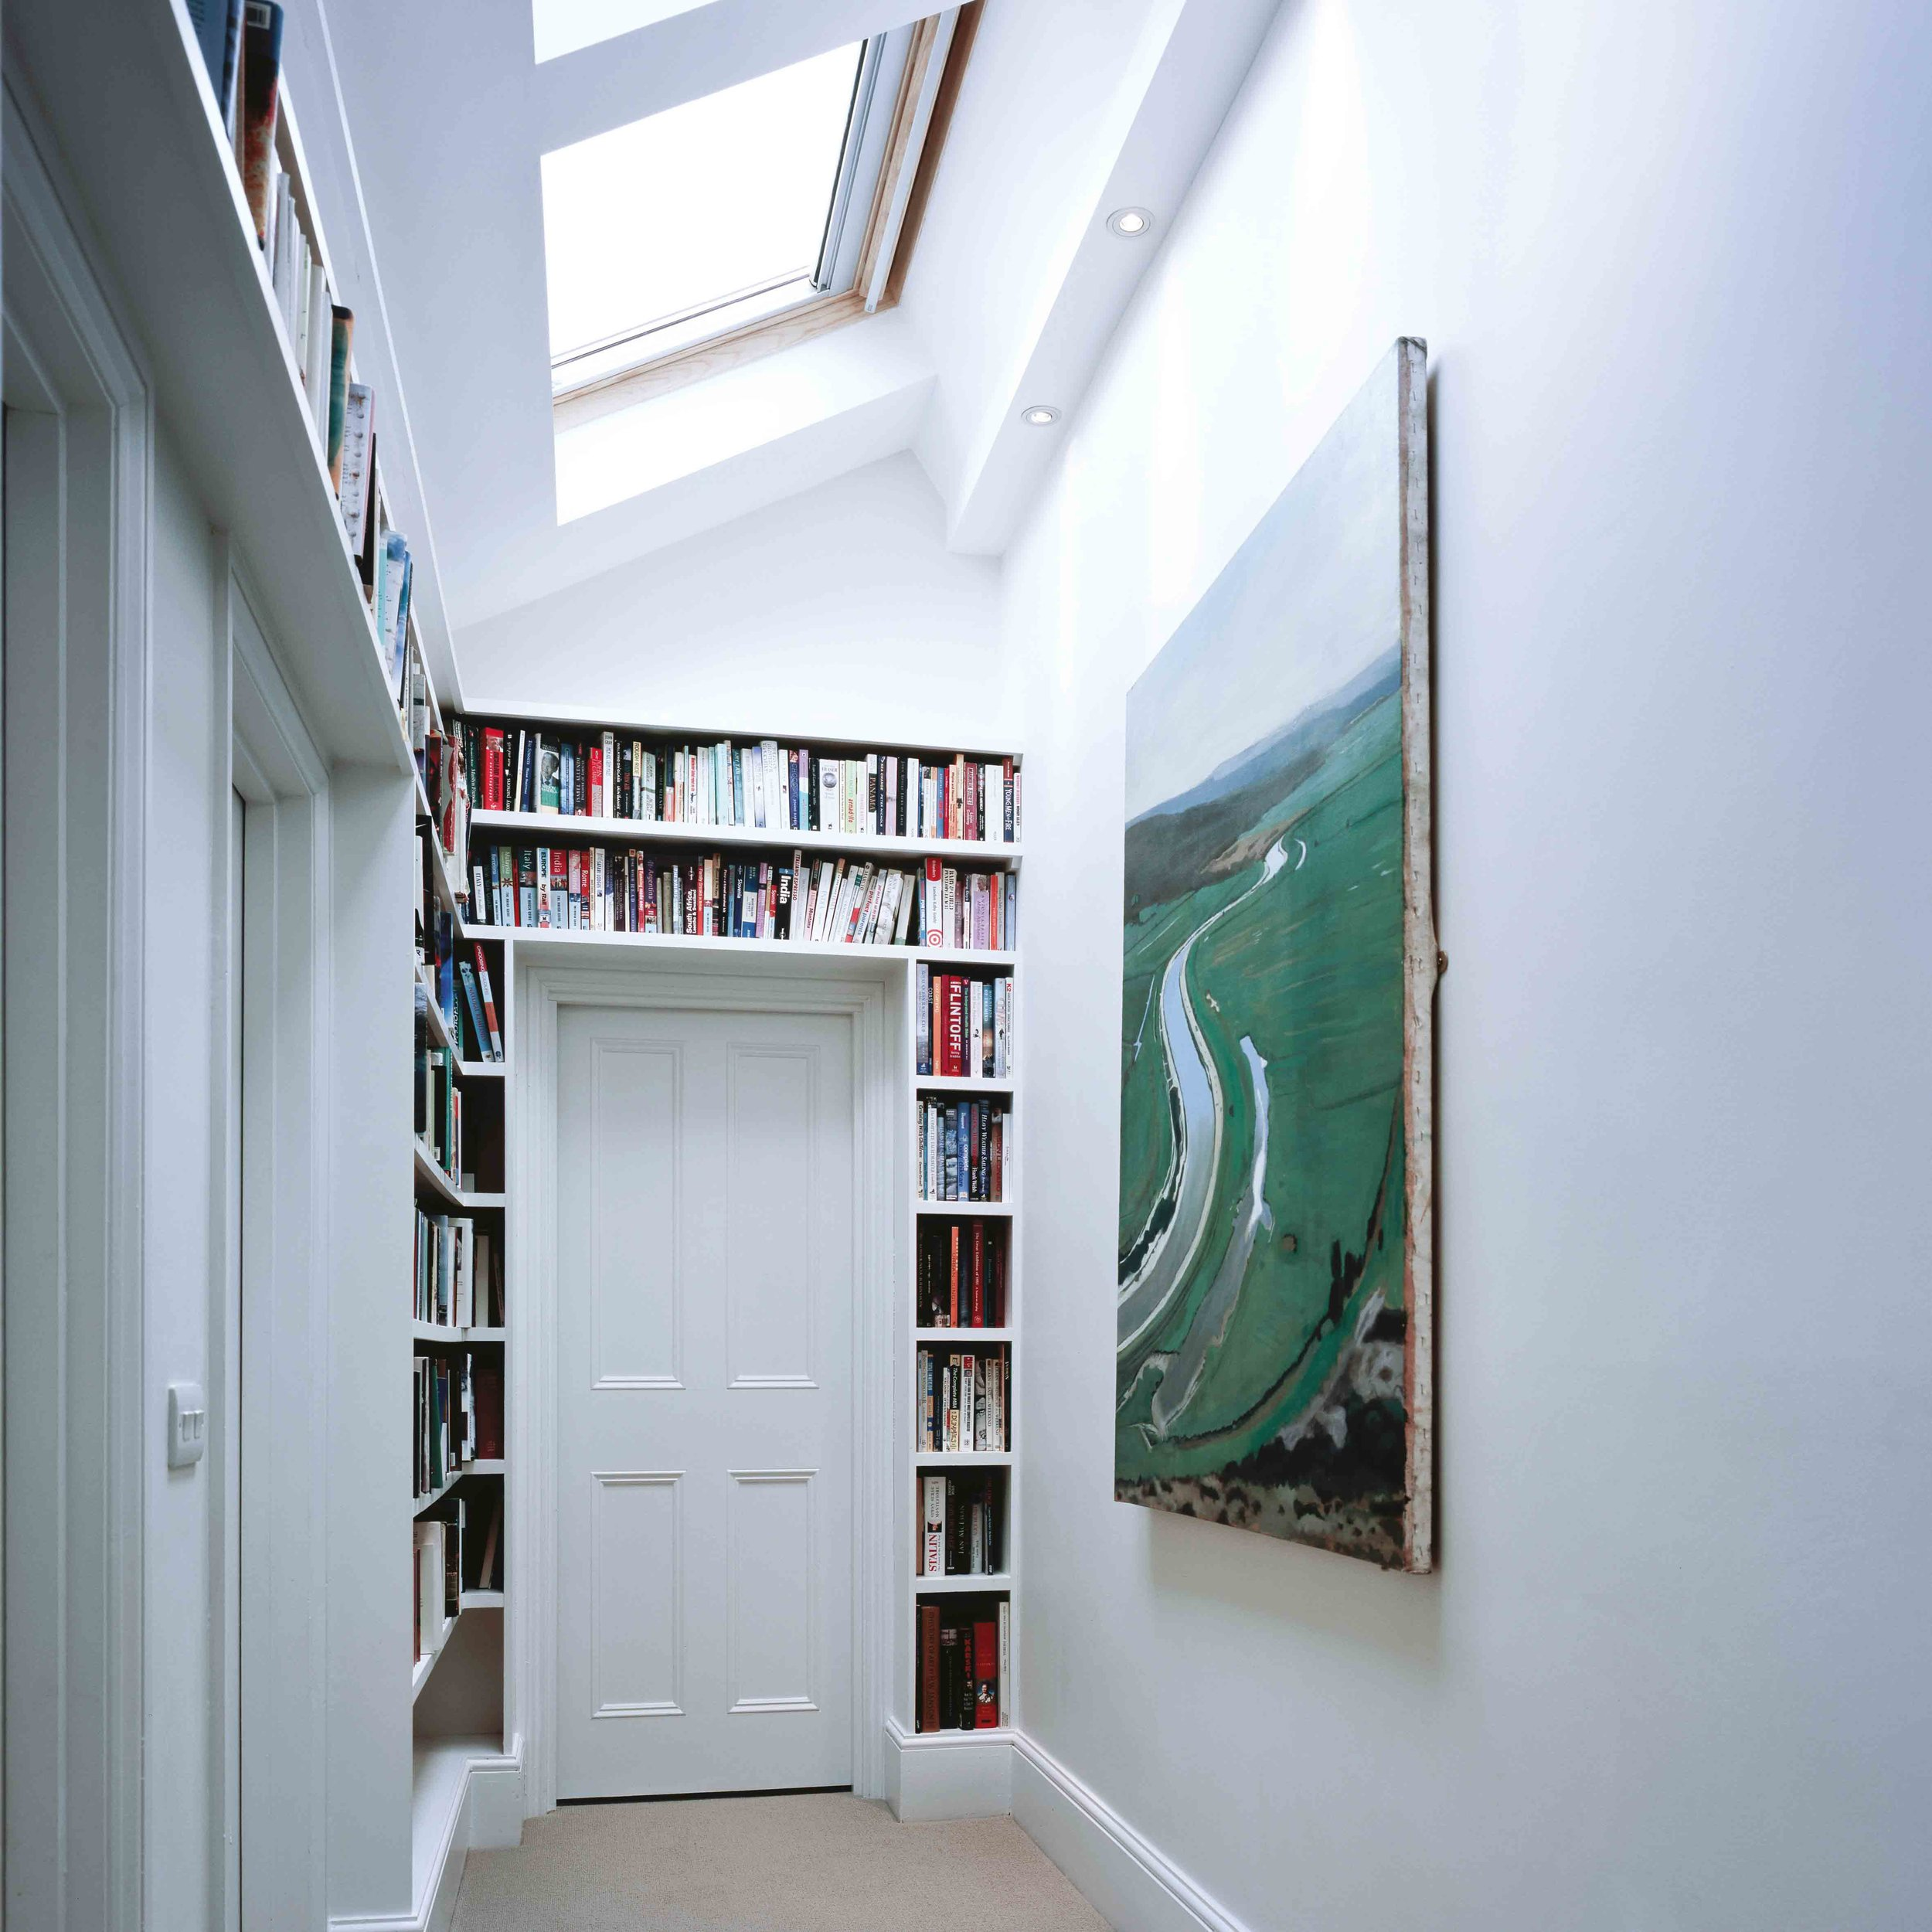 Bespoke joinery allow for corridor spaces to become libraries